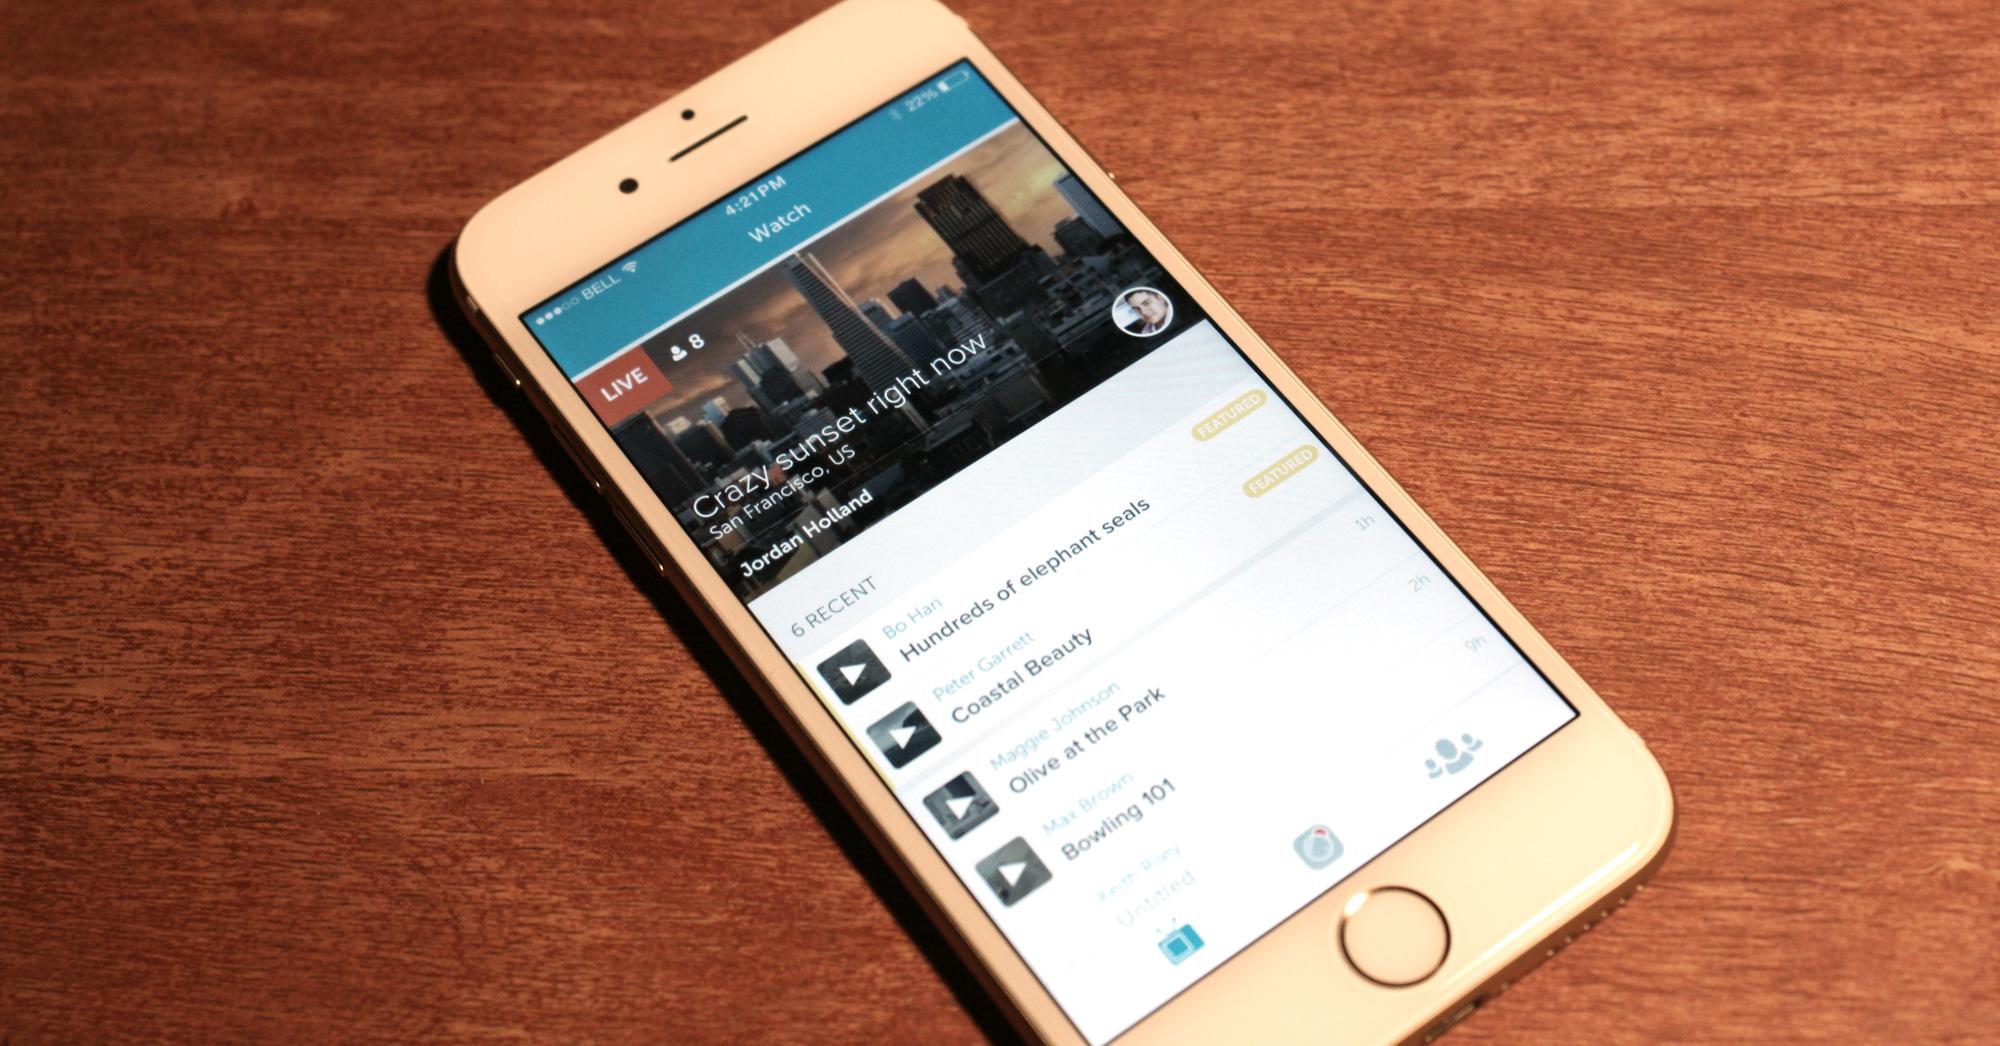 Twitter Launches Periscope, its Live Video-Streaming App